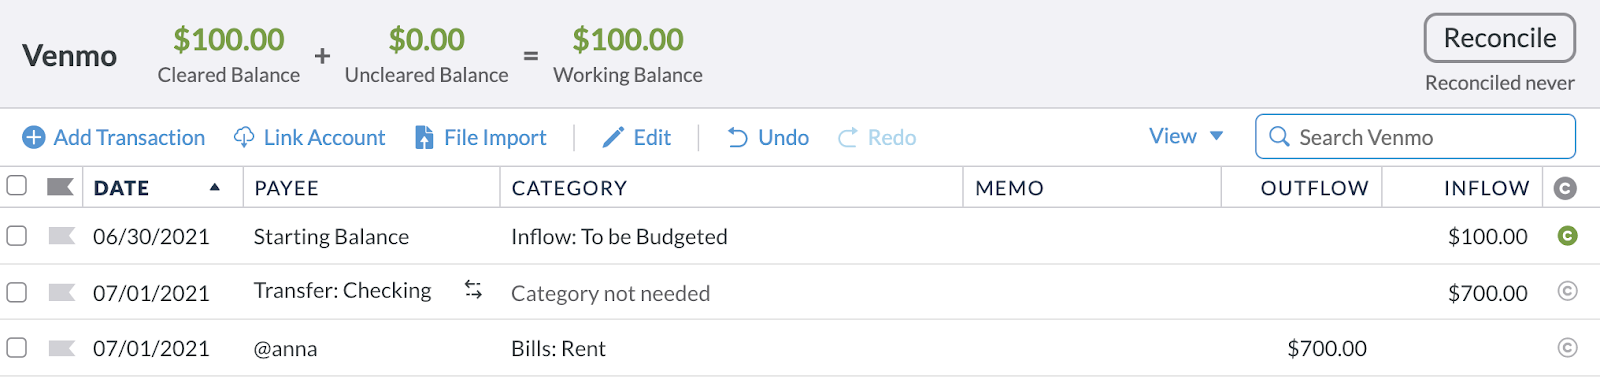 The money went from checking to Venmo, so it was recorded as an inflow to Venmo from checking and then an outflow to Anna when the rent payment was made.